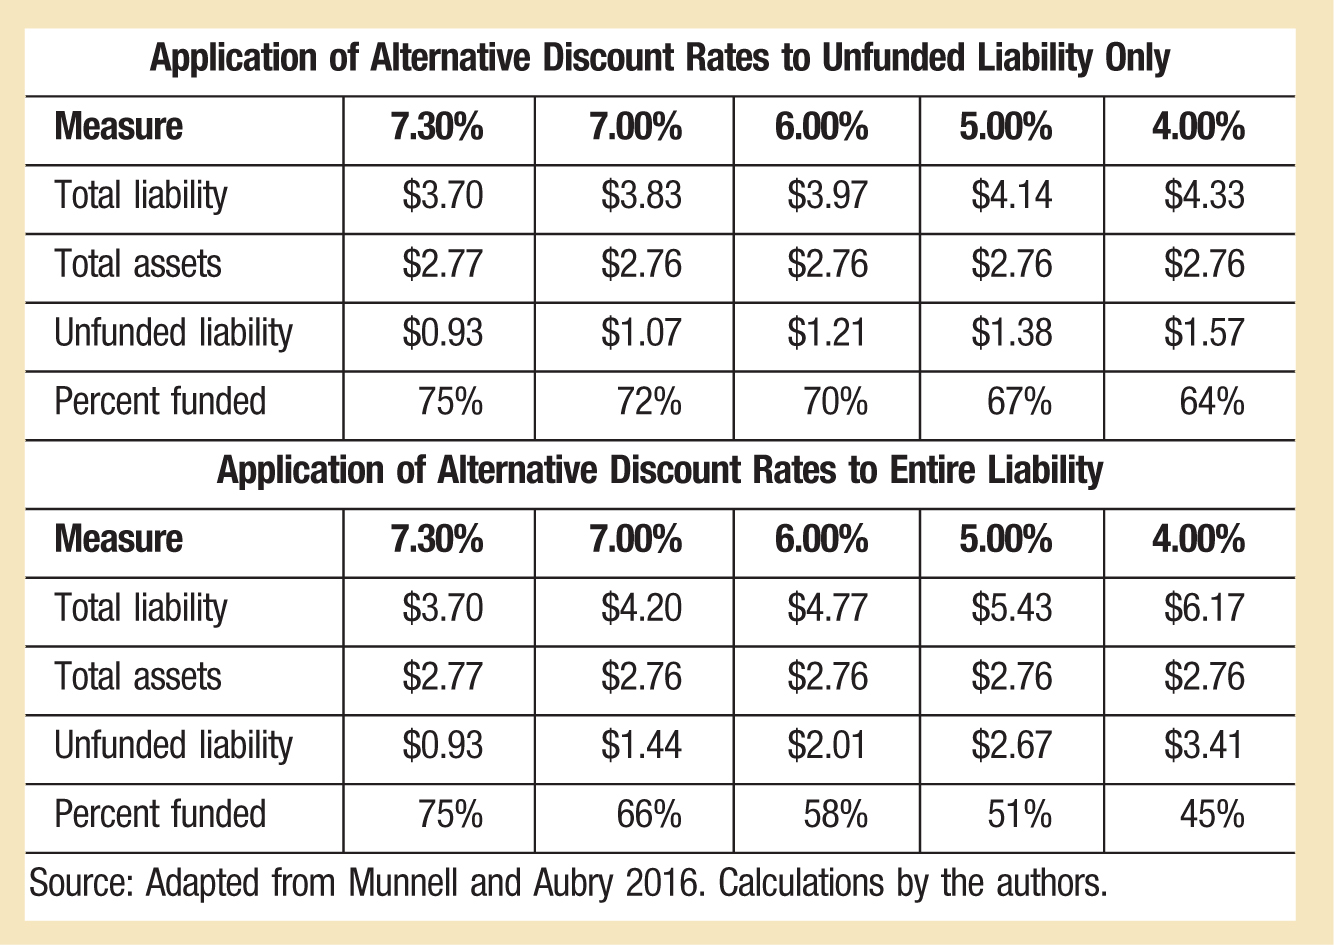 Application of Alternative Discount Rates to Unfunded Liability Only Measure; 7.30%; 7.00%; 6.00%; 5.00%; 4.00% Total liability; $3.70; $3.83; $3.97; $4.14; $4.33 Total assets; $2.77; $2.76; $2.76; $2.76; $2.76 Unfunded liability; $0.93; $1.07; $1.21; $1.38; $1.57 Percent funded; 75%; 72%; 70%; 67%; 64% Application of Alternative Discount Rates to Entire Liability Measure; 7.30%; 7.00%; 6.00%; 5.00%; 4.00% Total liability; $3.70; $4.20; $4.77; $5.43; $6.17 Total assets; $2.77; $2.76; $2.76; $2.76; $2.76 Unfunded liability; $0.93; $1.44; $2.01; $2.67; $3.41 Percent funded; 75%; 66%; 58%; 51%; 45% Source: Adapted from Munnell and Aubry 2016. Calculations by the authors.